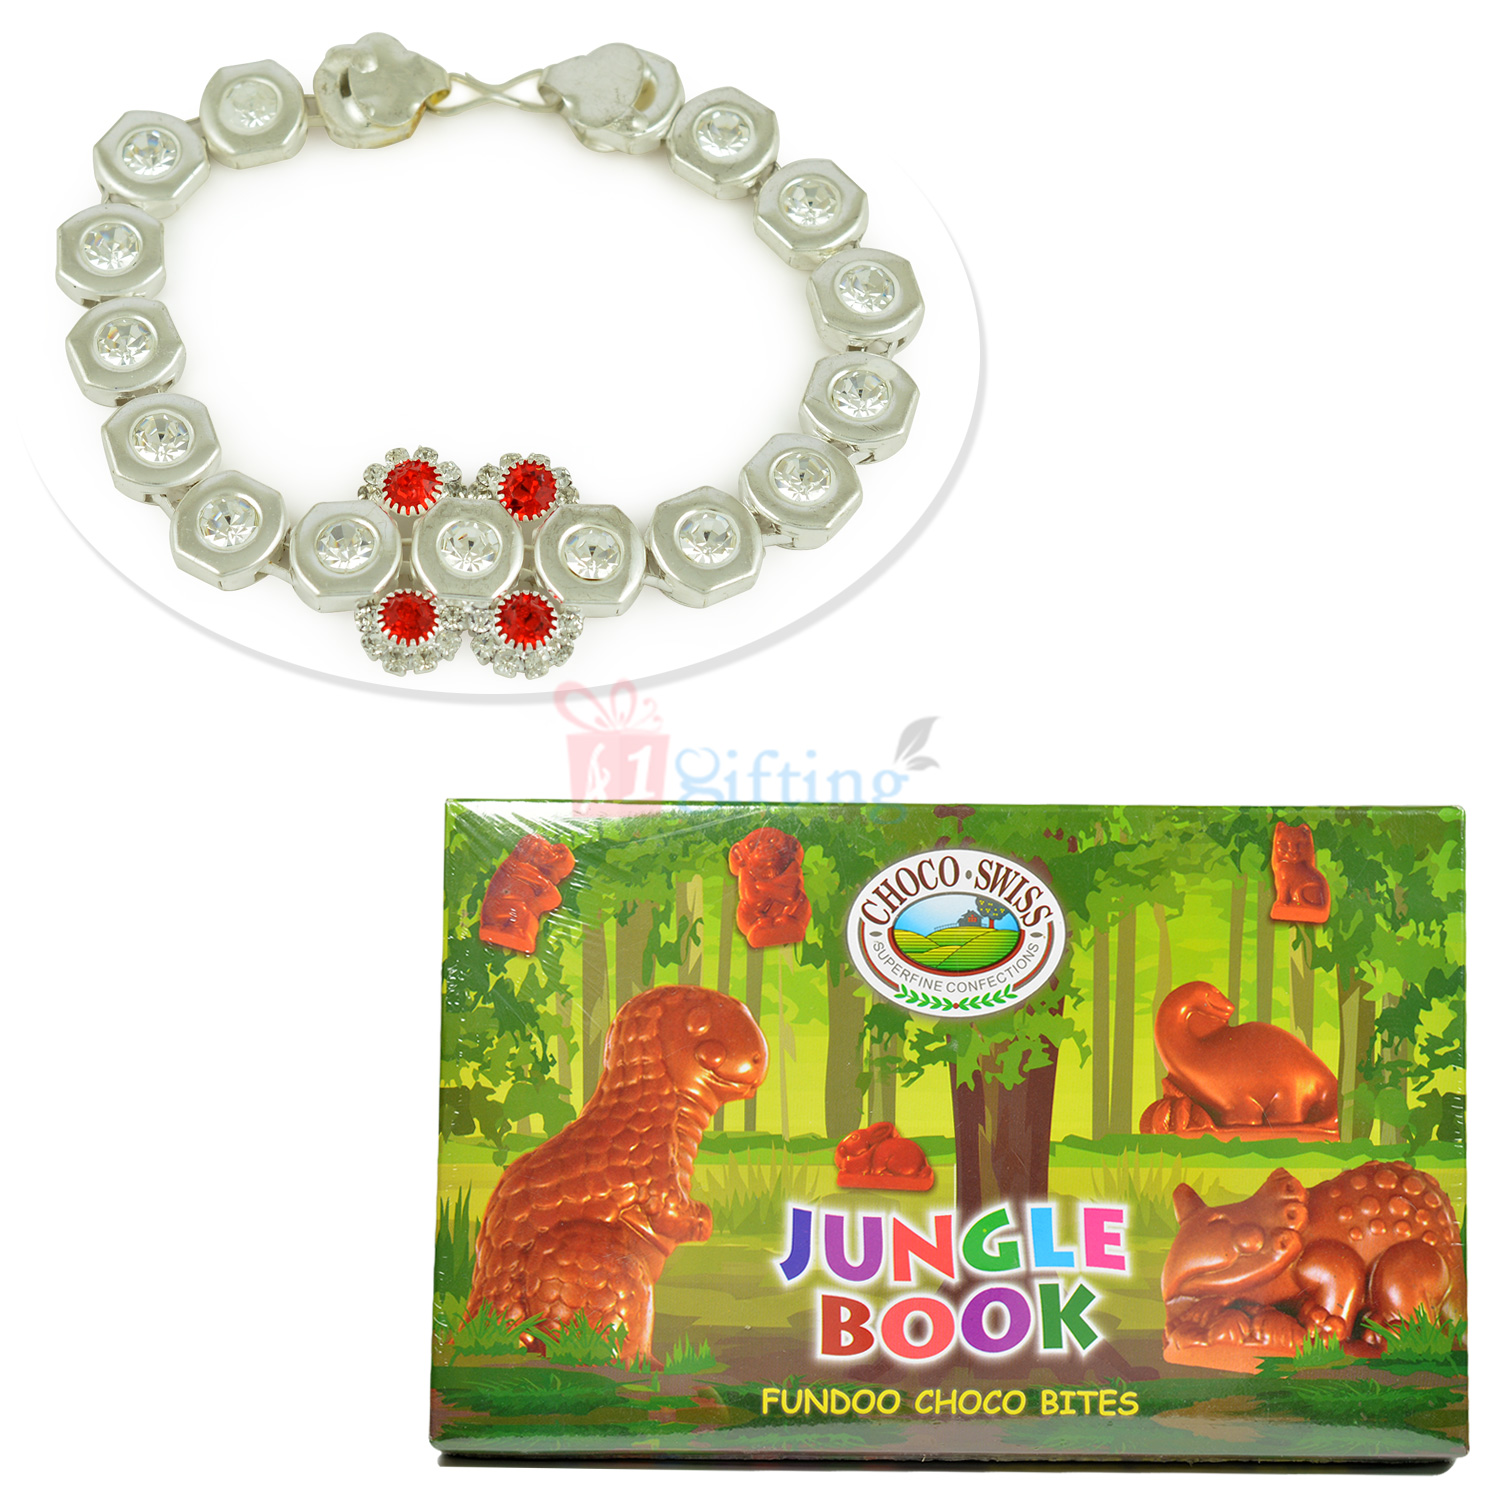 Choco Swiss Jungle Book Pack with Silver Look Awesome Bracelet